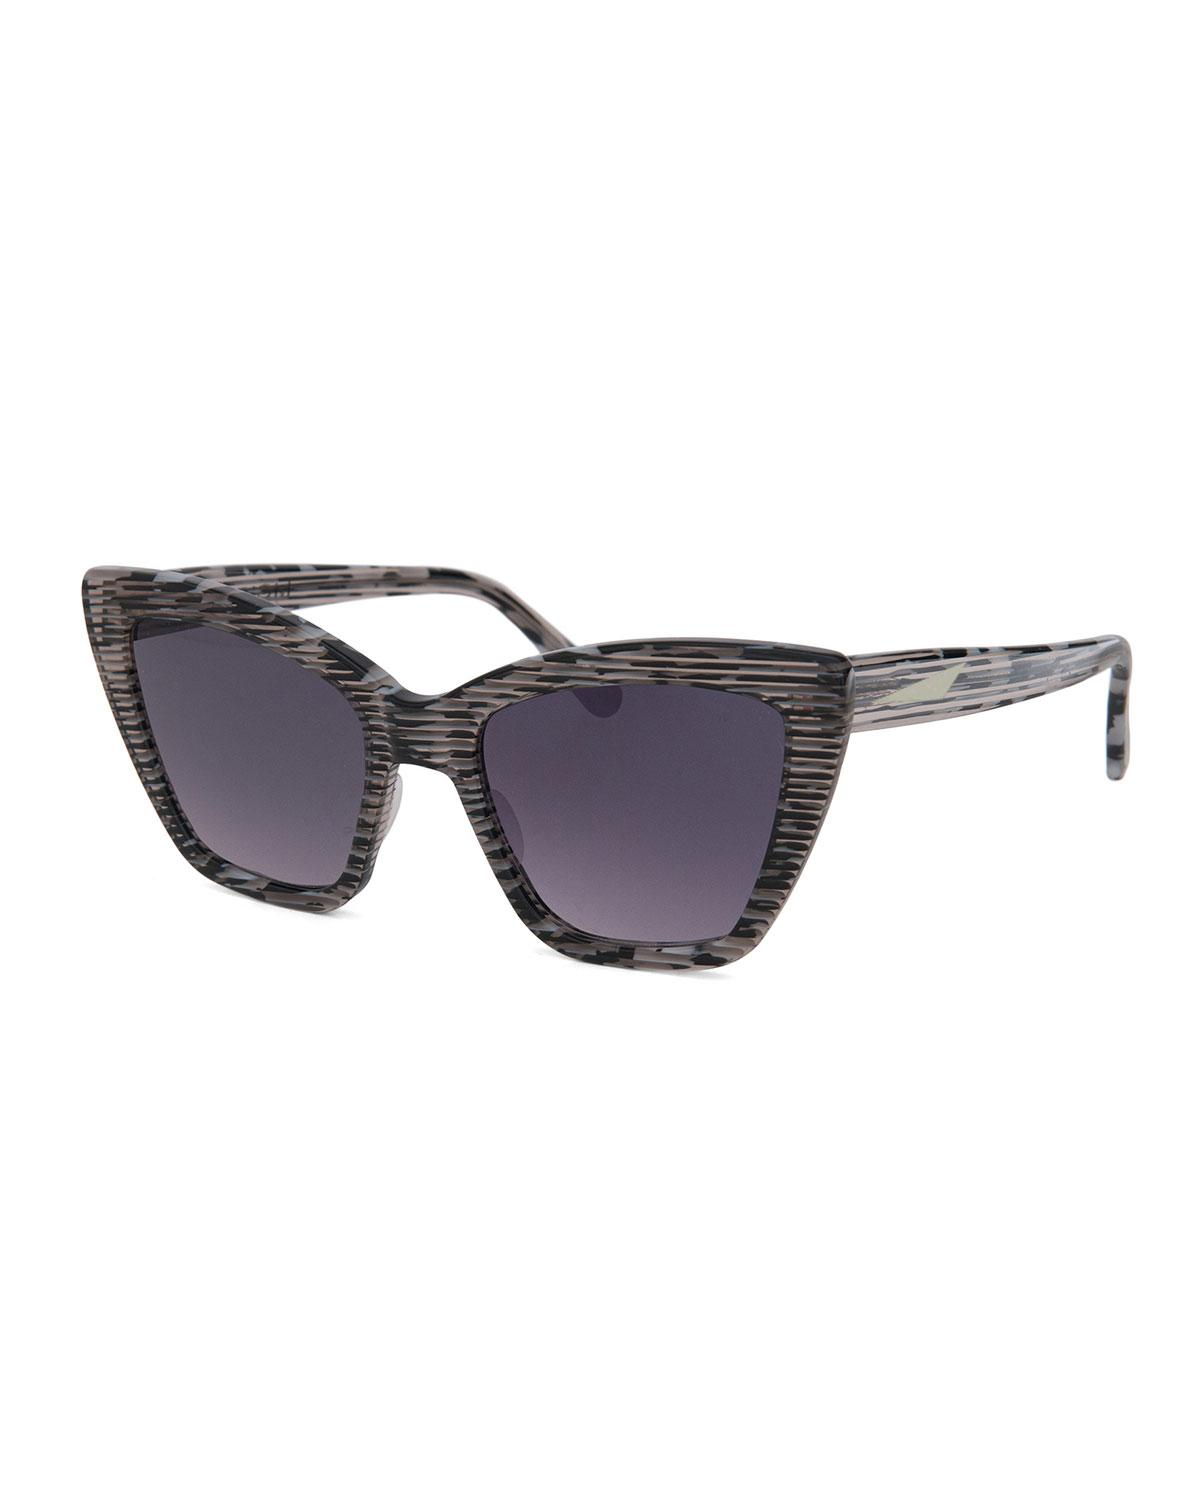 Prism Woman Cat-eye Acetate Sunglasses Violet Size Prism